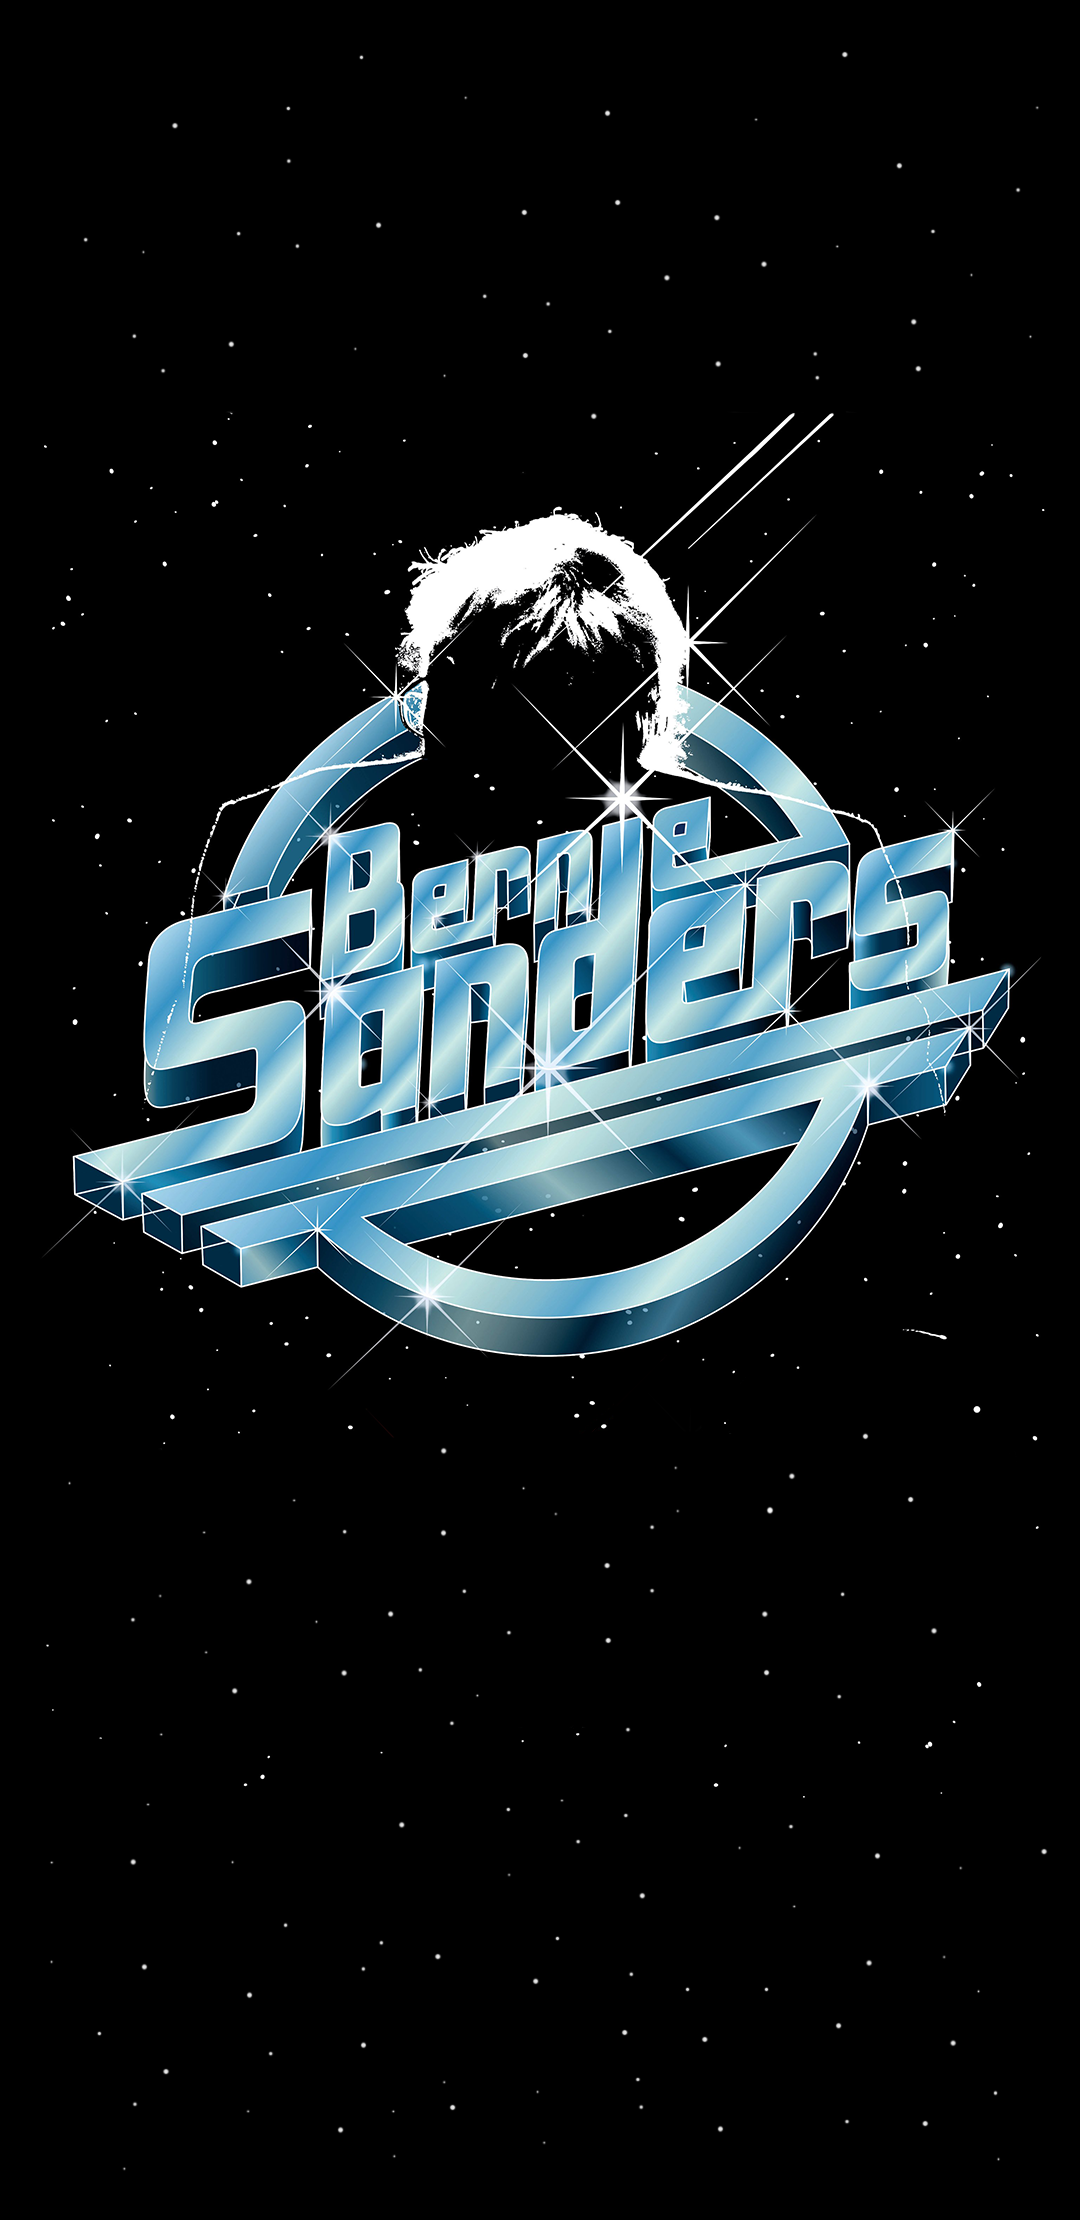 Starman Sanders Made From A Poster For An Event With Bernie And The Strokes S8 Wallpaper Photo Wall Collage The Strokes